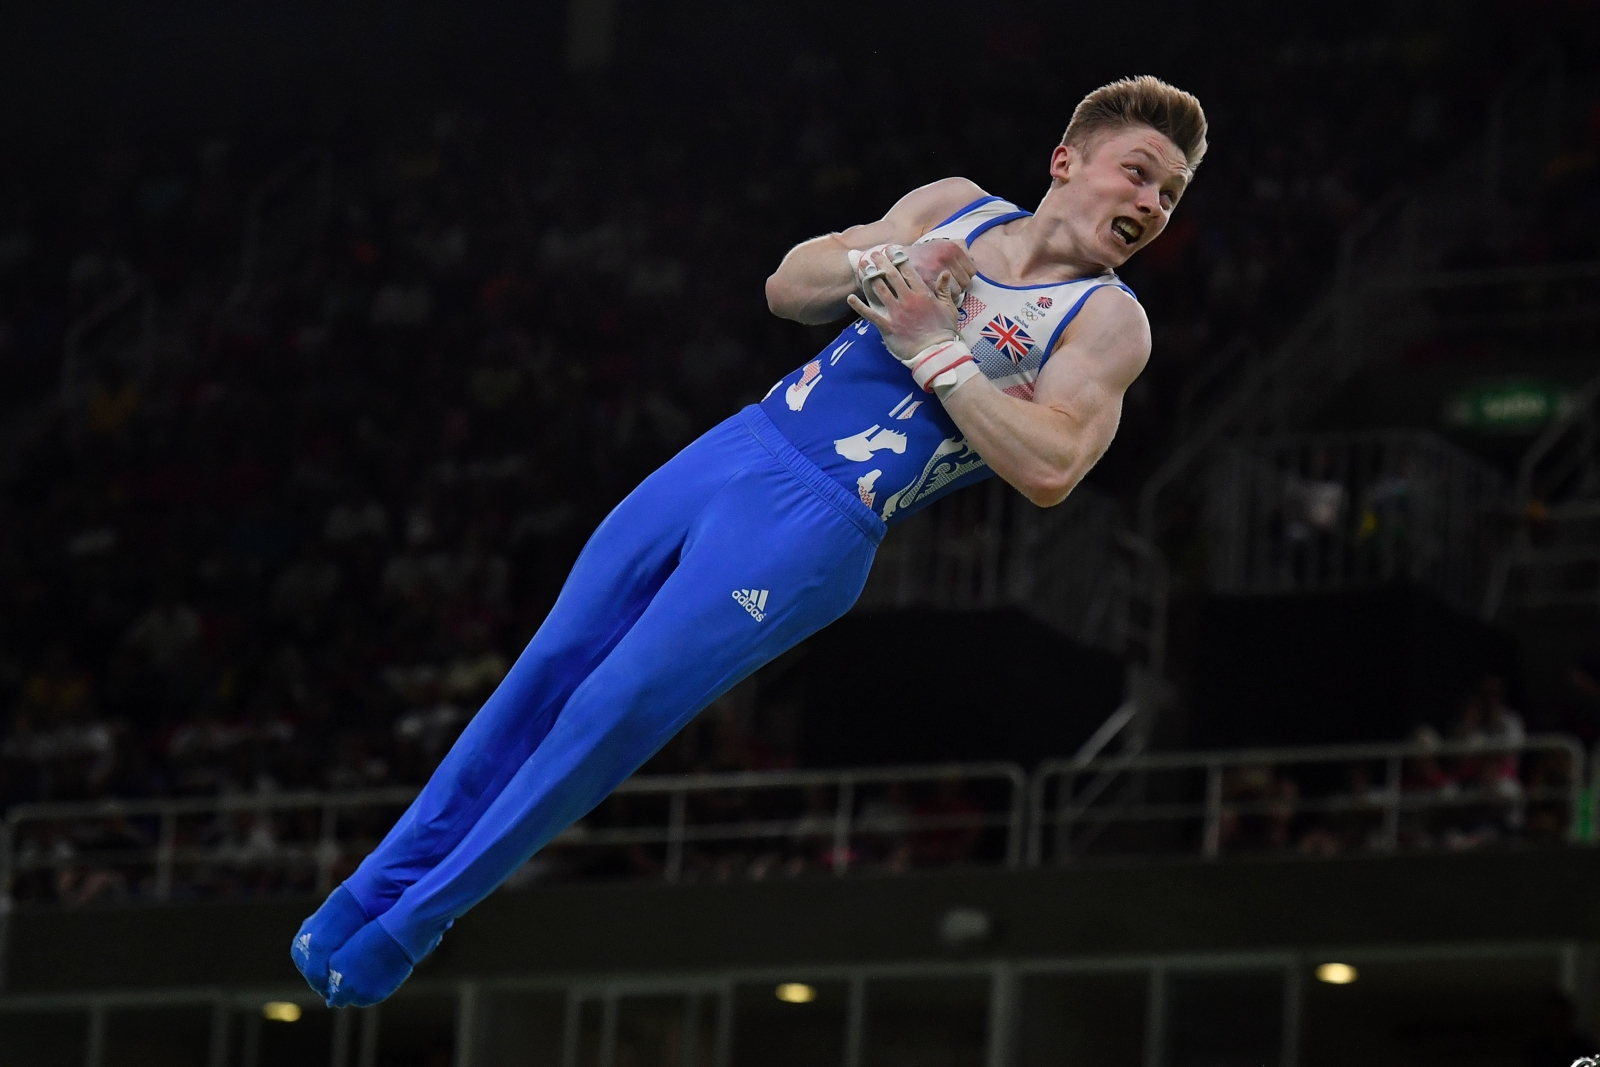 Rio 2016 Olympics Amy Tinkler And Nile Wilson Win Bronze